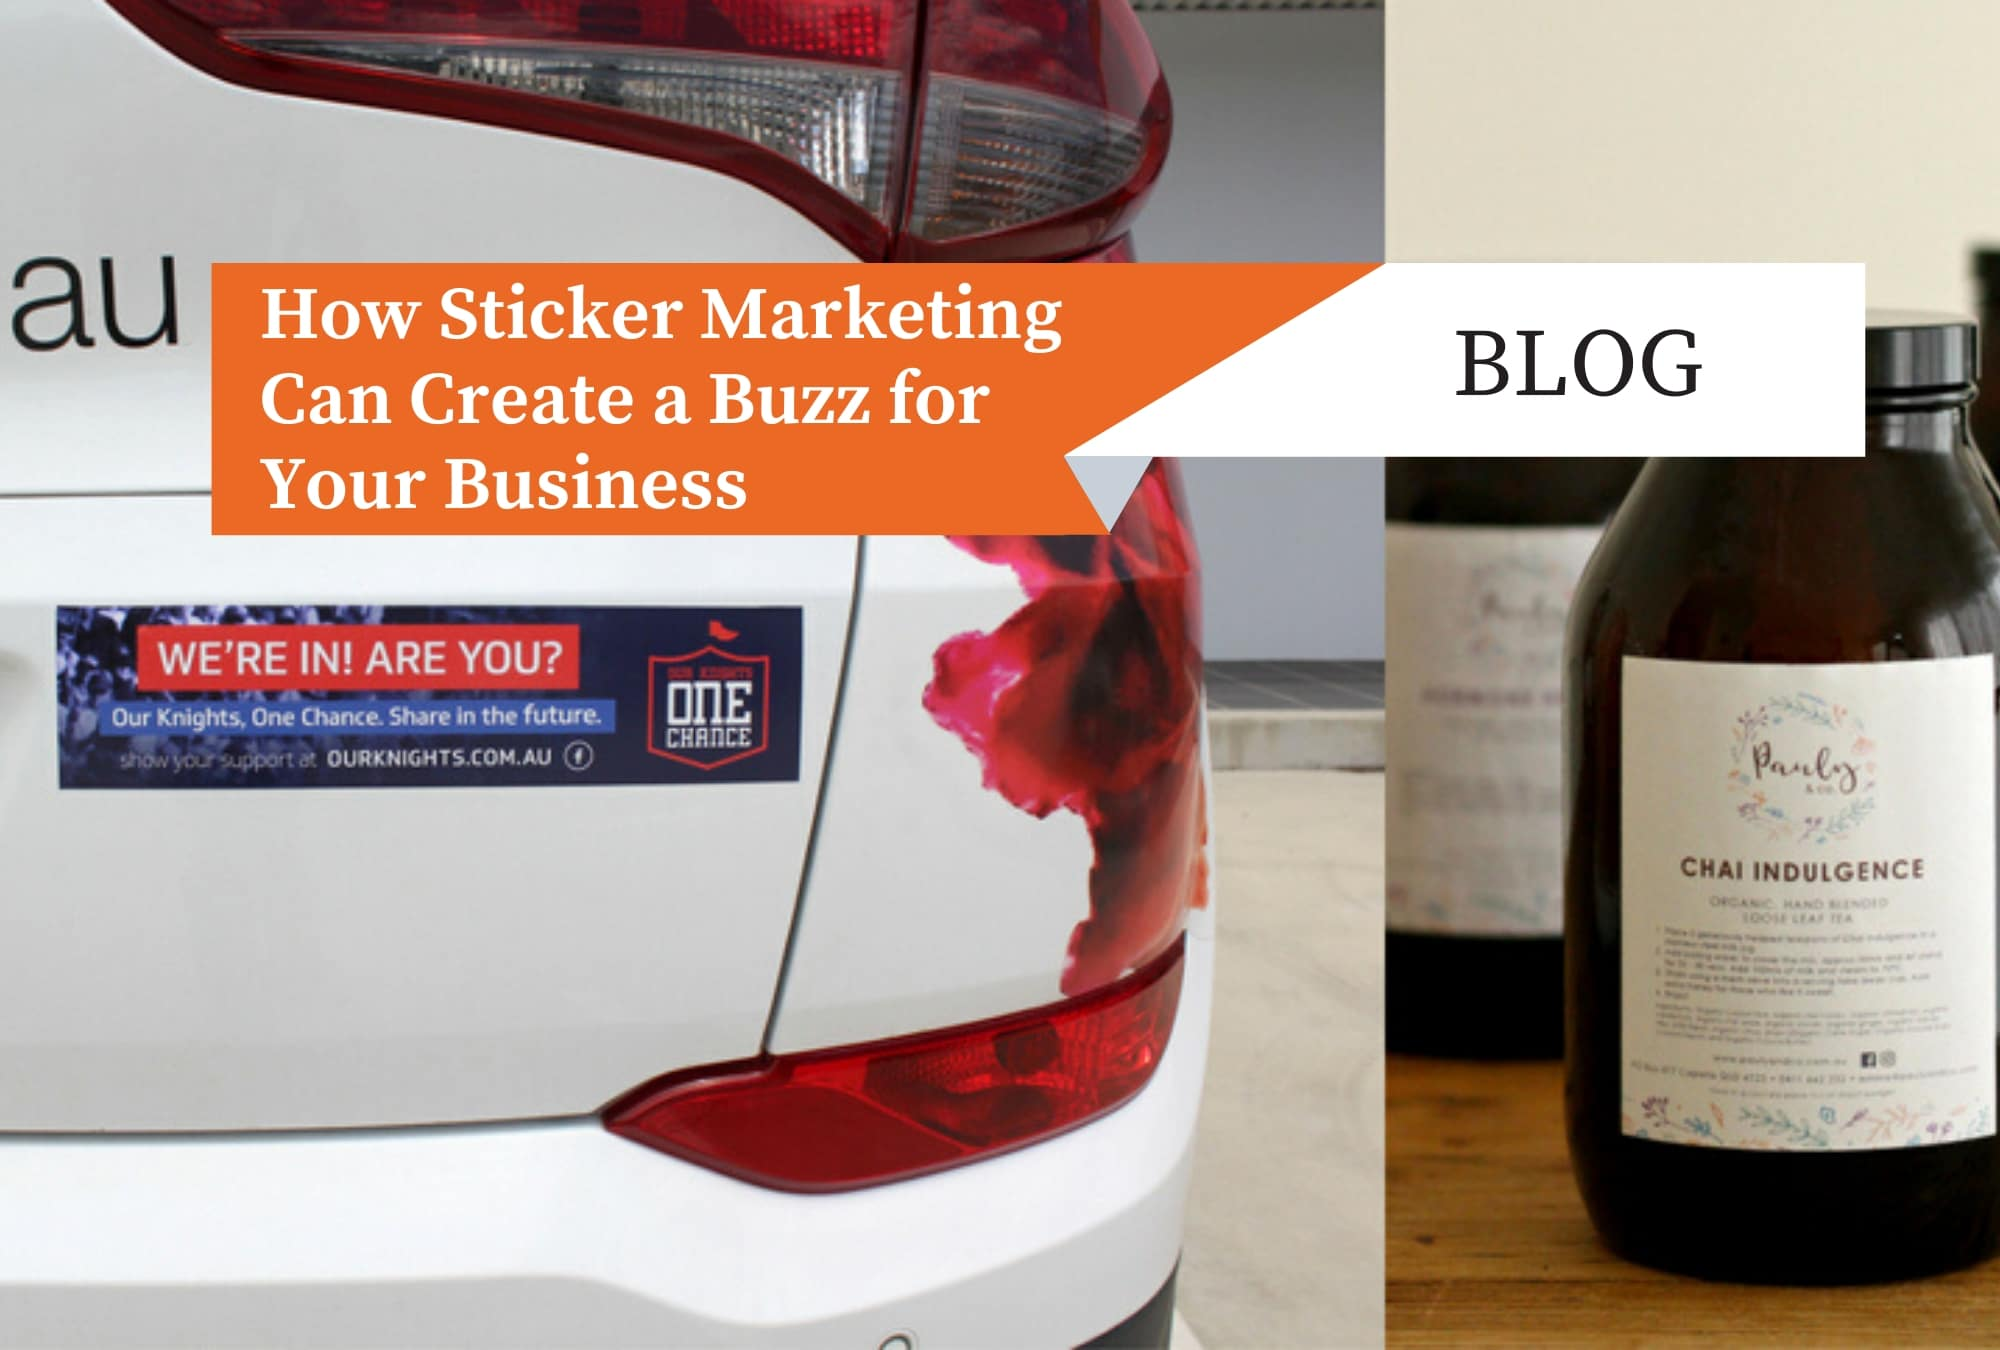 How Sticker Marketing Can Create a Buzz for Your Business